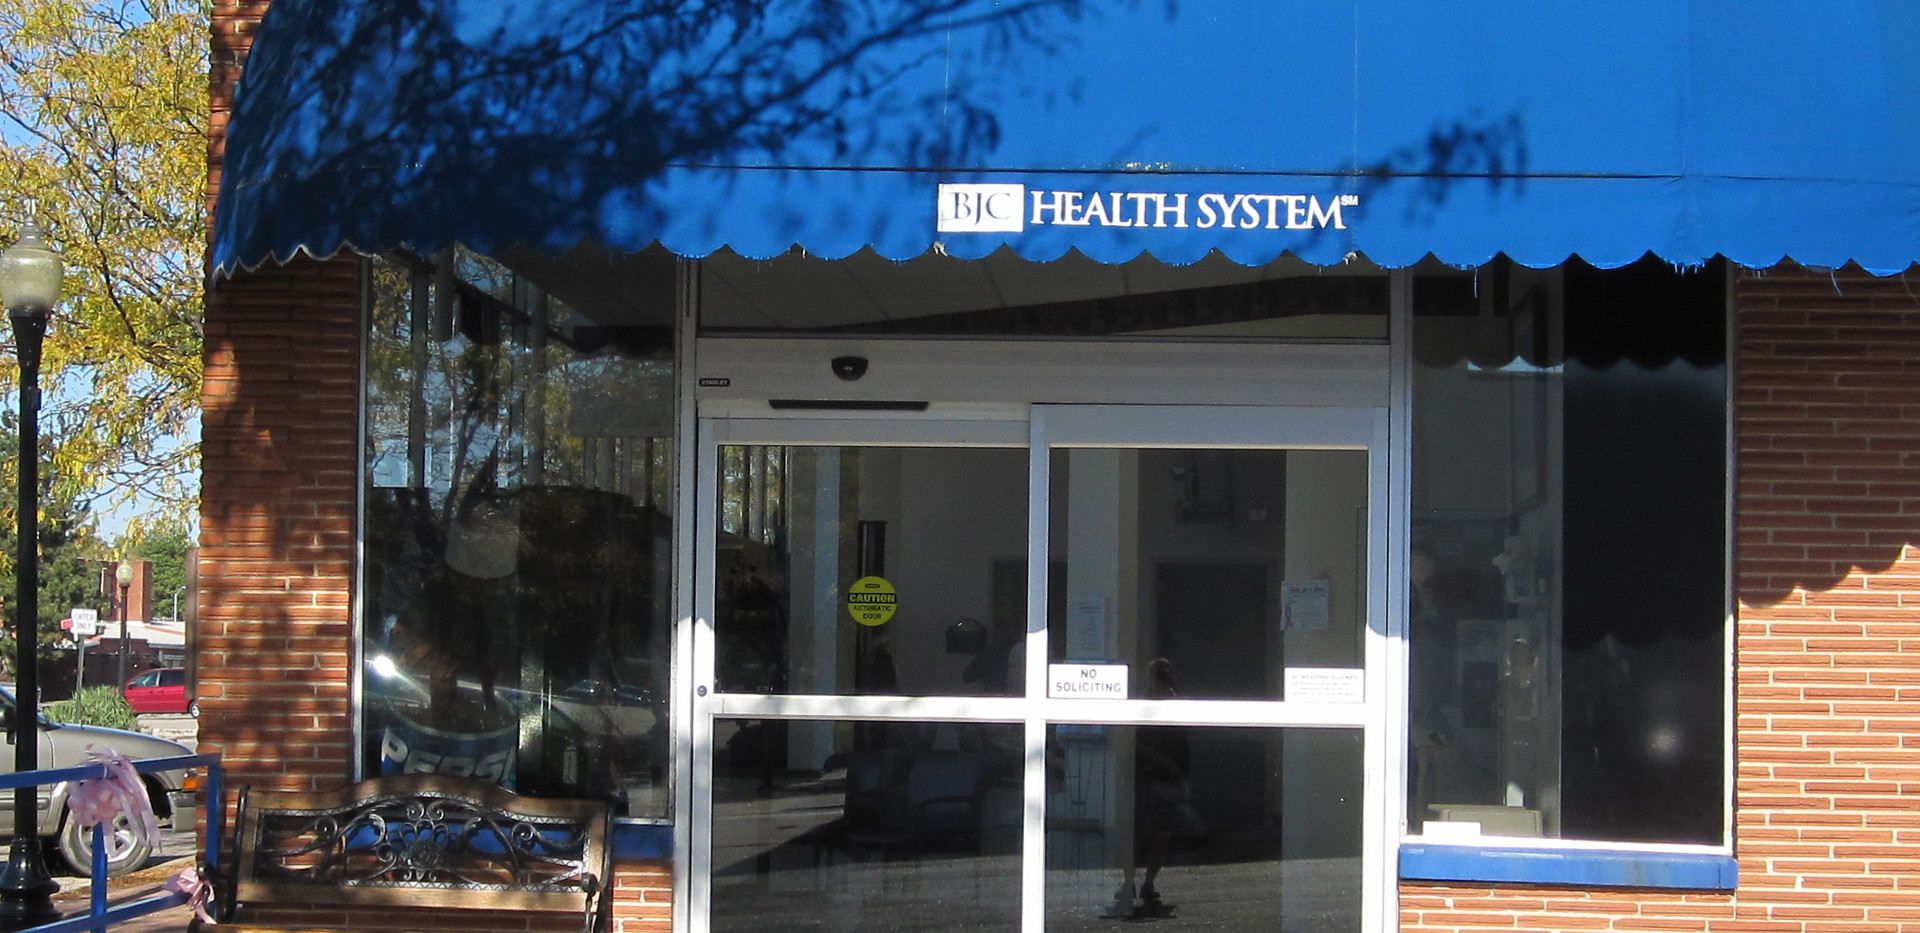 Health System Business Tint